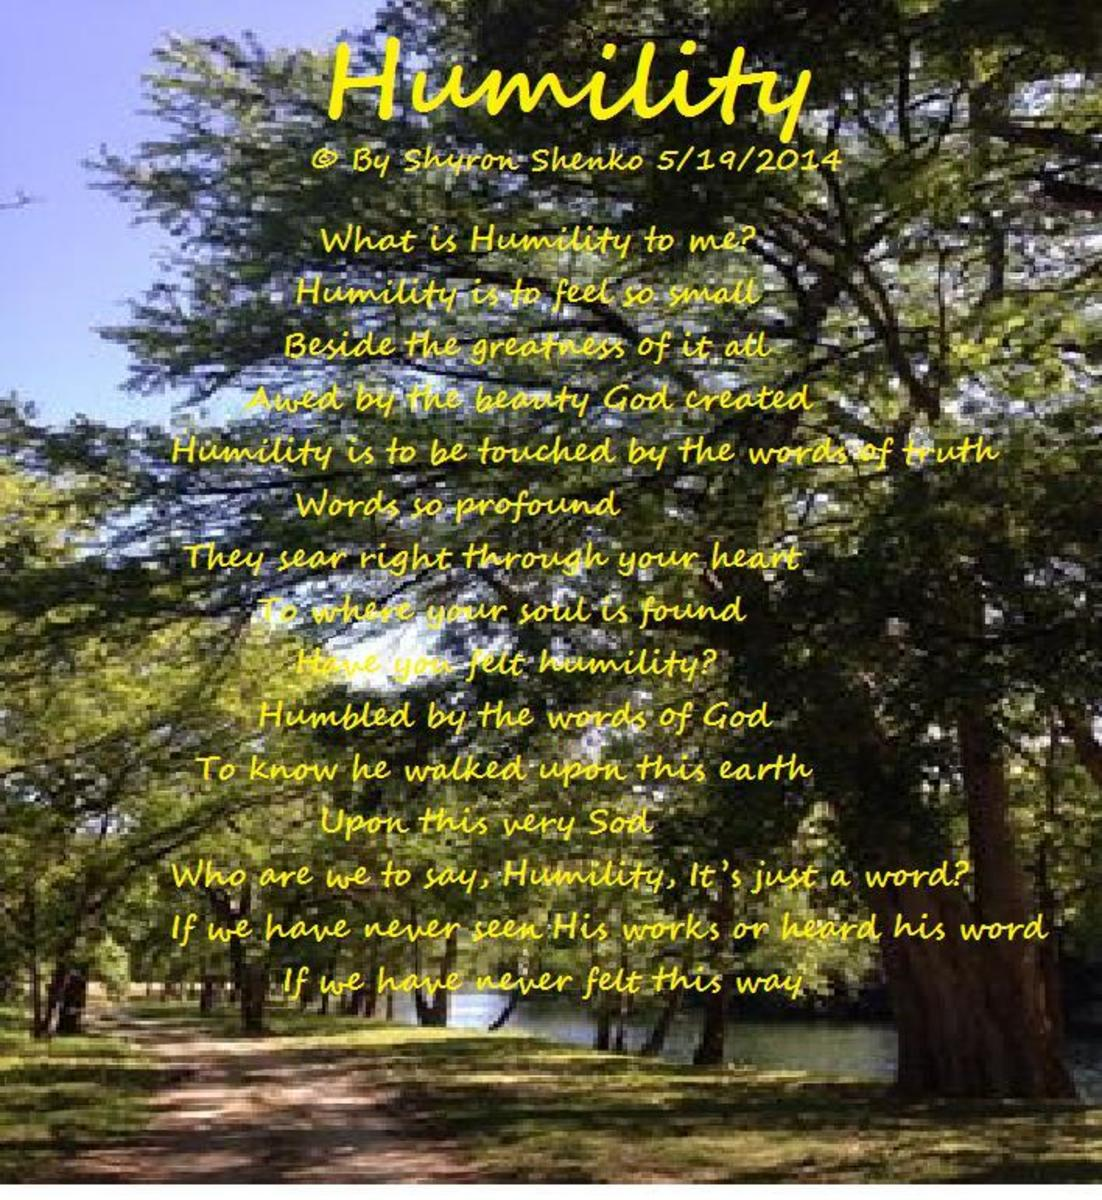 Humility - 17th Word-in the Good Words Project (Poem)